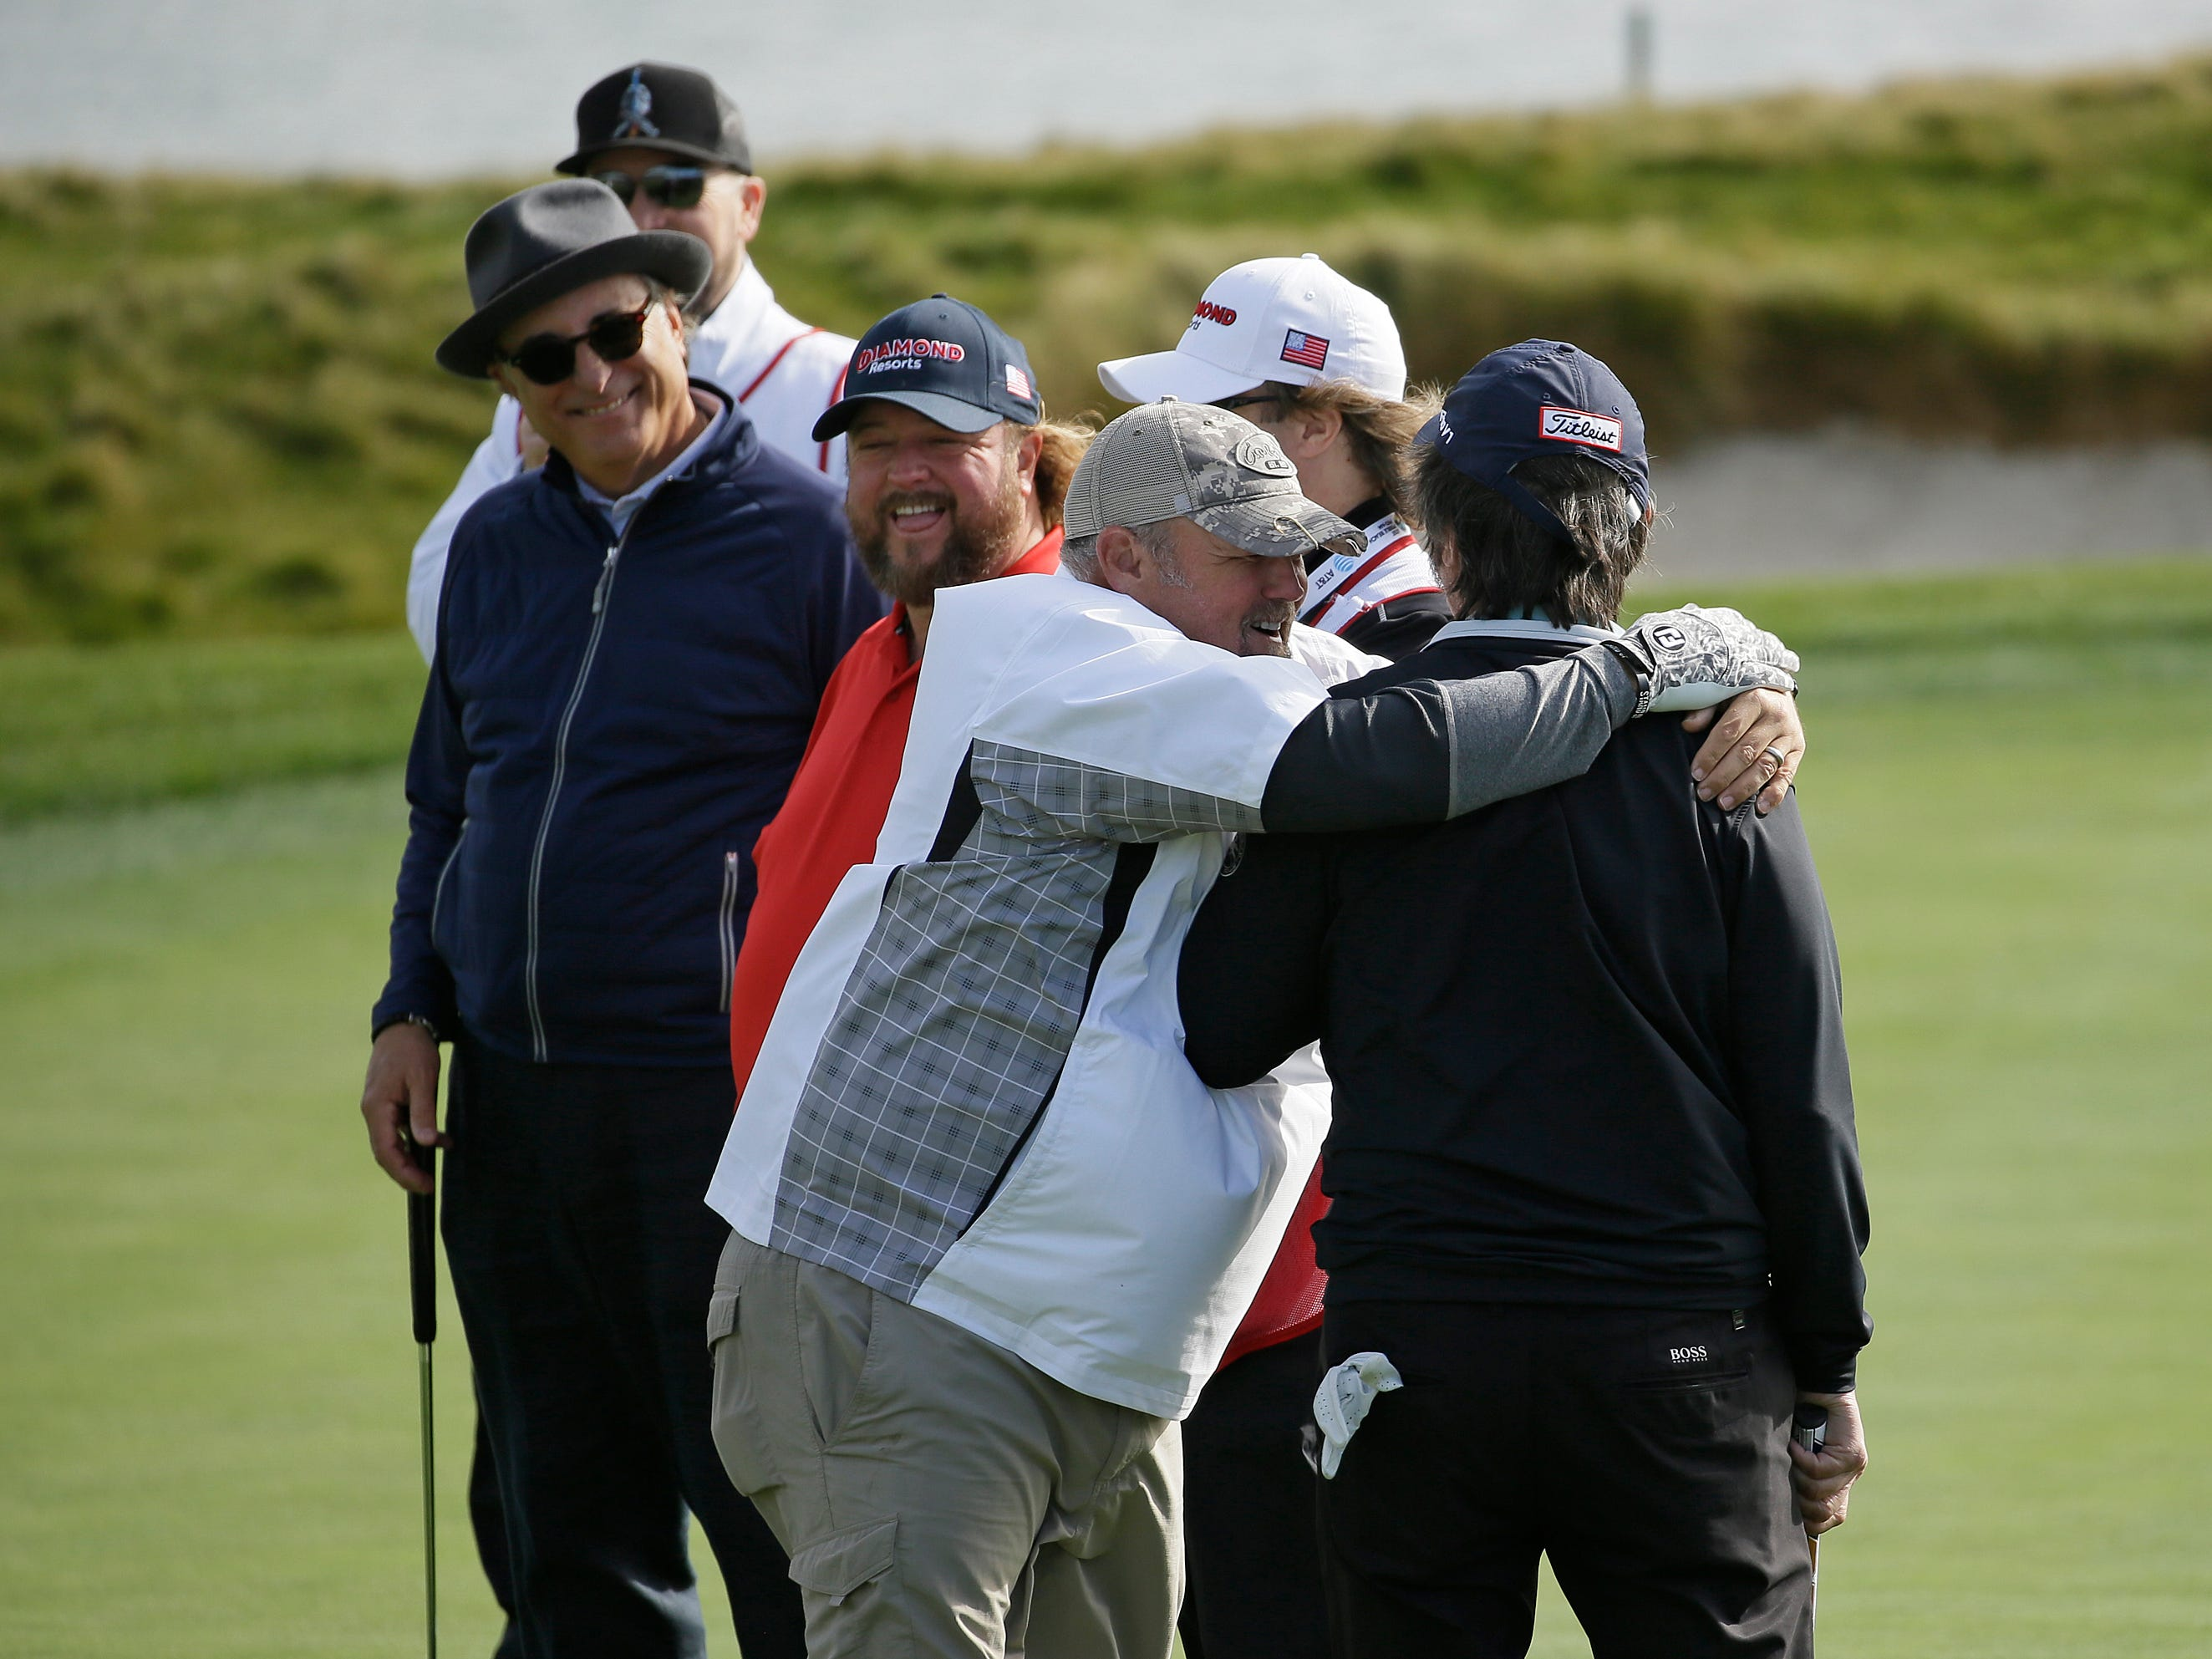 Ray Romano is embraced by Daniel Lawrence Whitney, known professionally as Larry the Cable Guy on the 17th green alongside singer Colt Ford and actor Andy Garcia during the celebrity challenge event of the AT&T Pebble Beach National Pro-Am.